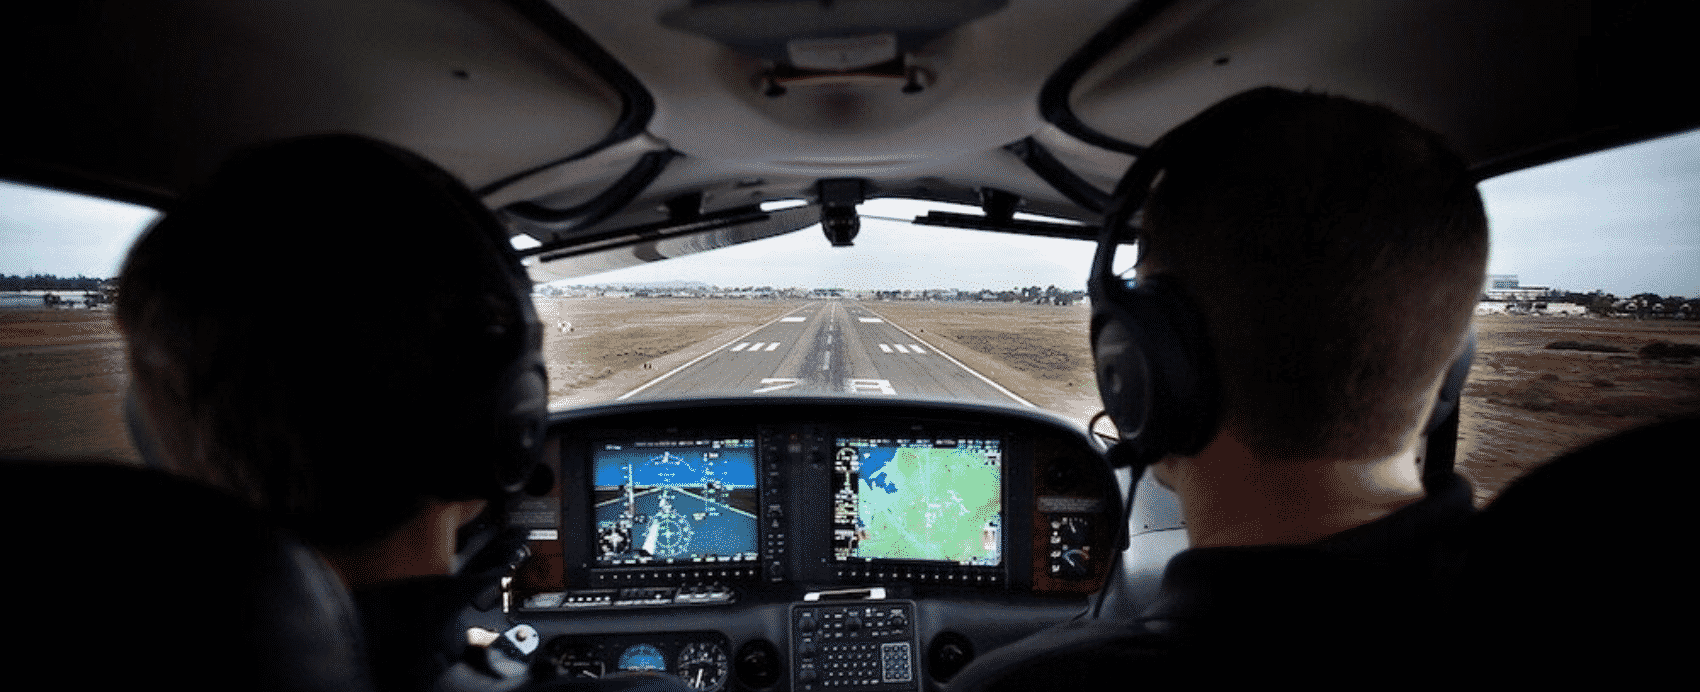 Philip Nijnens and Ronnie Greathouse Flying Cirrus SR22